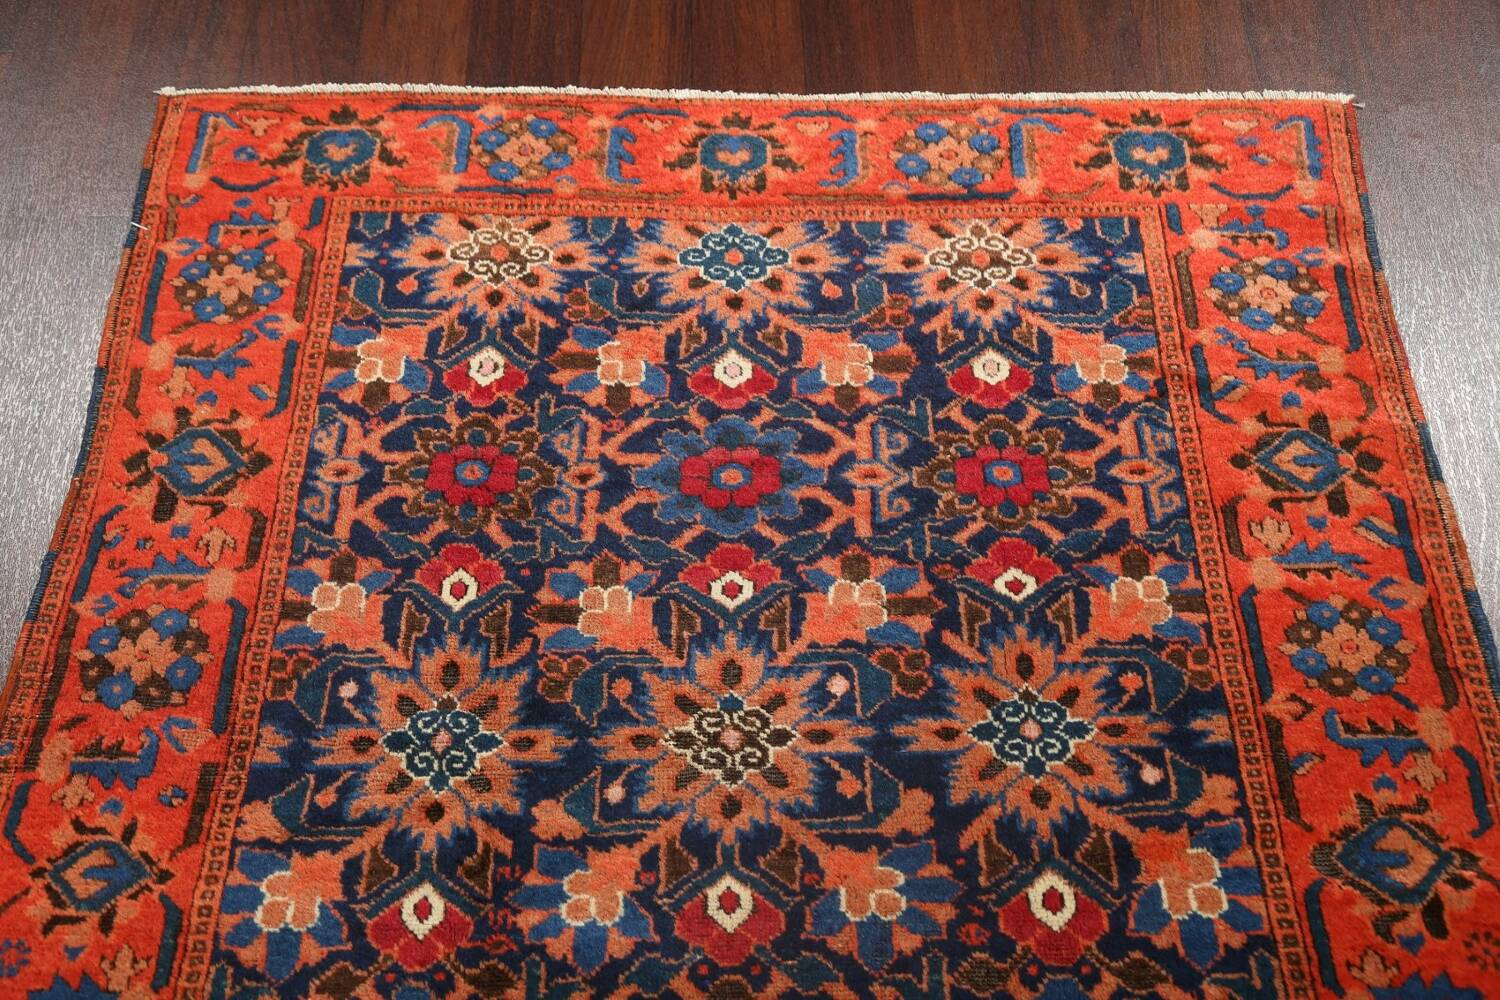 Antique 100% Vegetable Dye Malayer Persian Area Rug 4x7 image 14